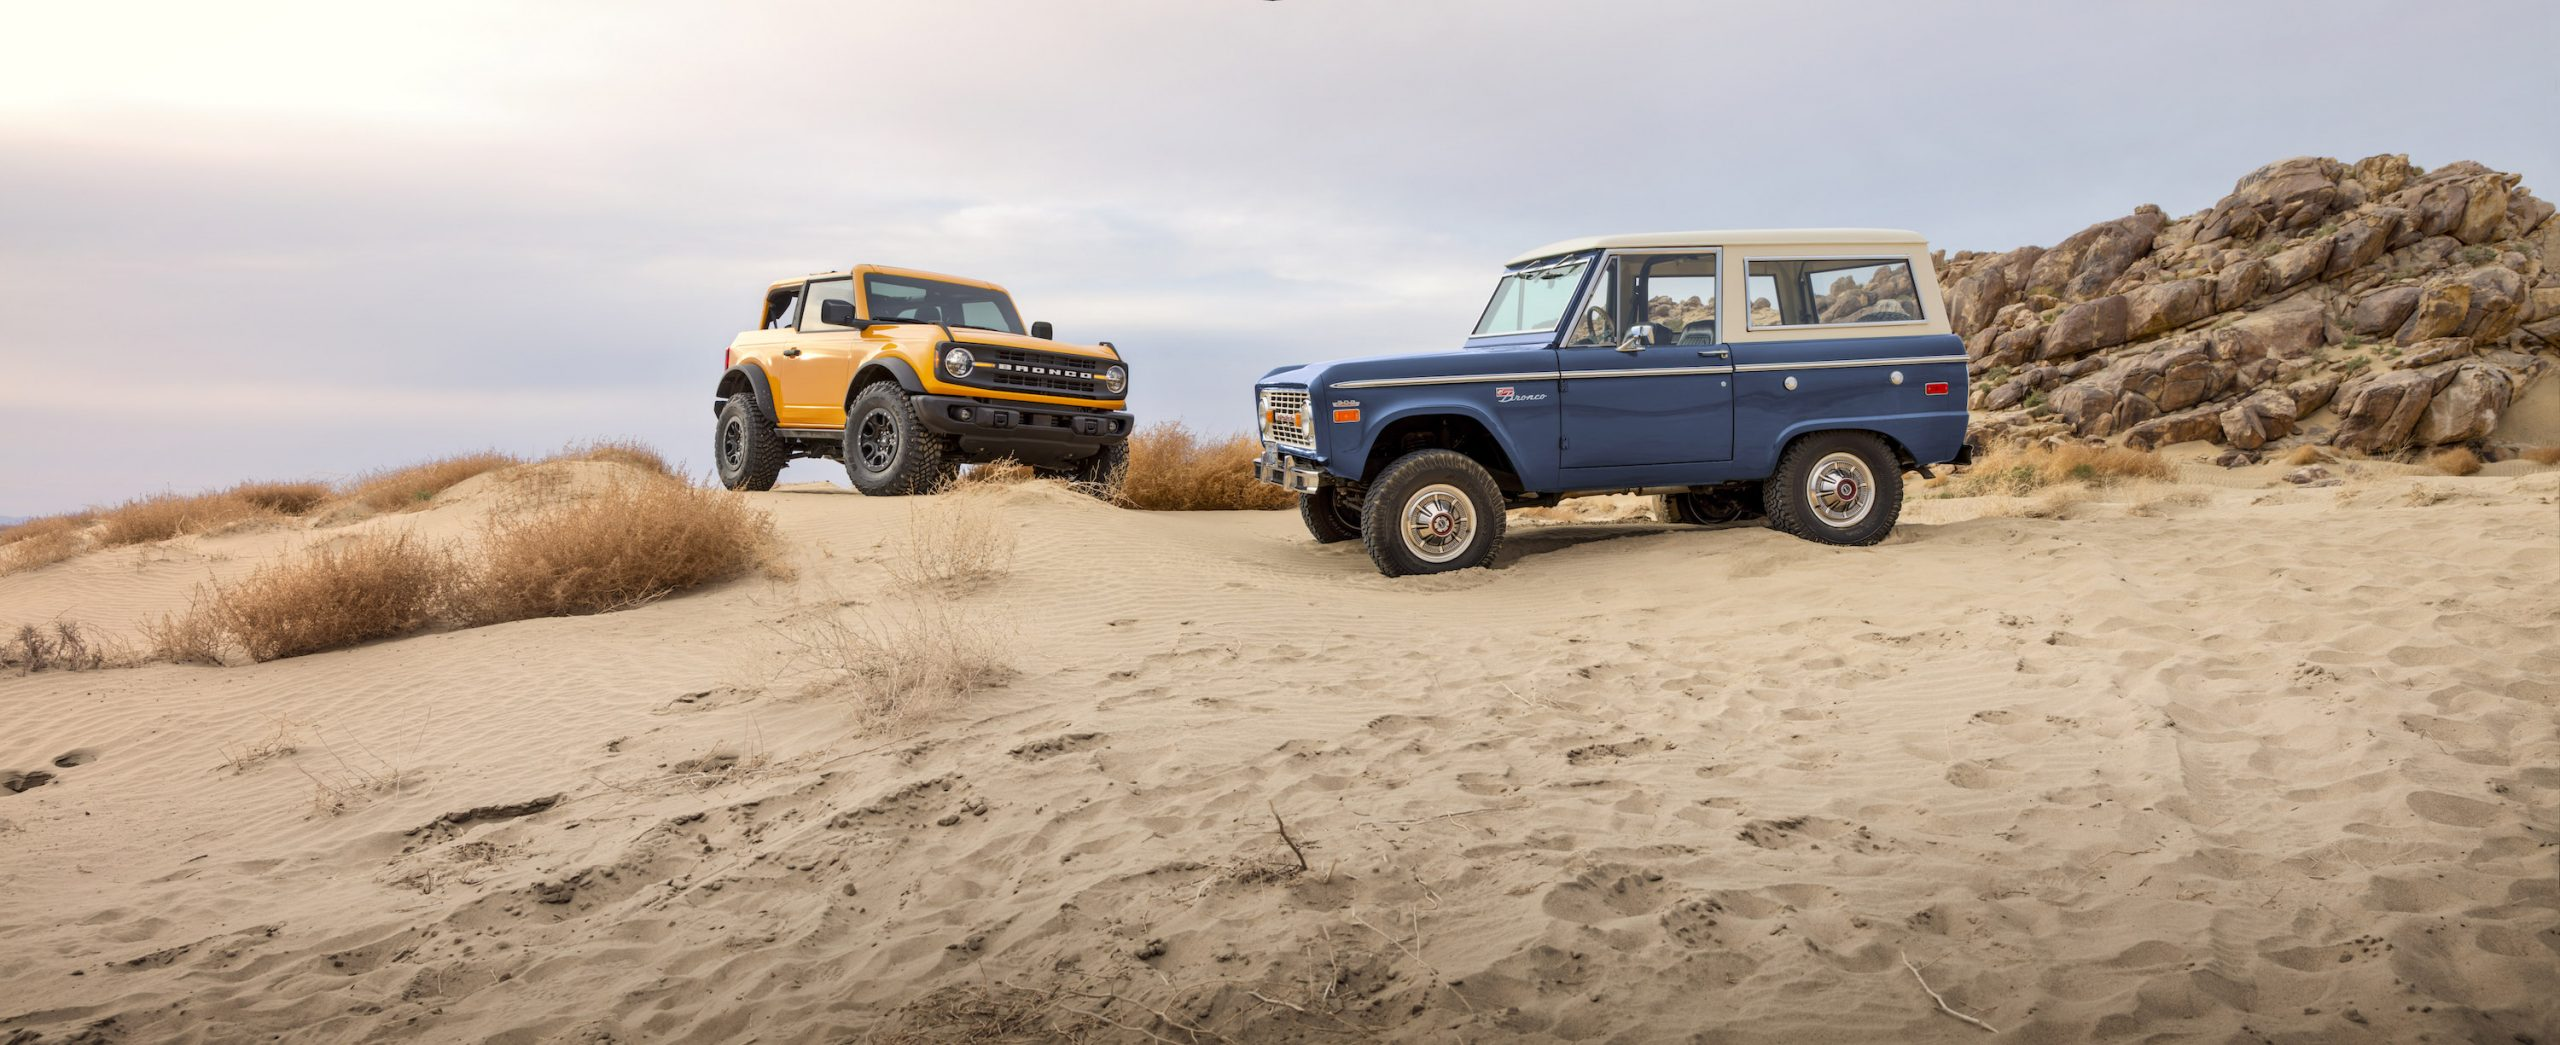 2021 Ford Bronco Past and Present